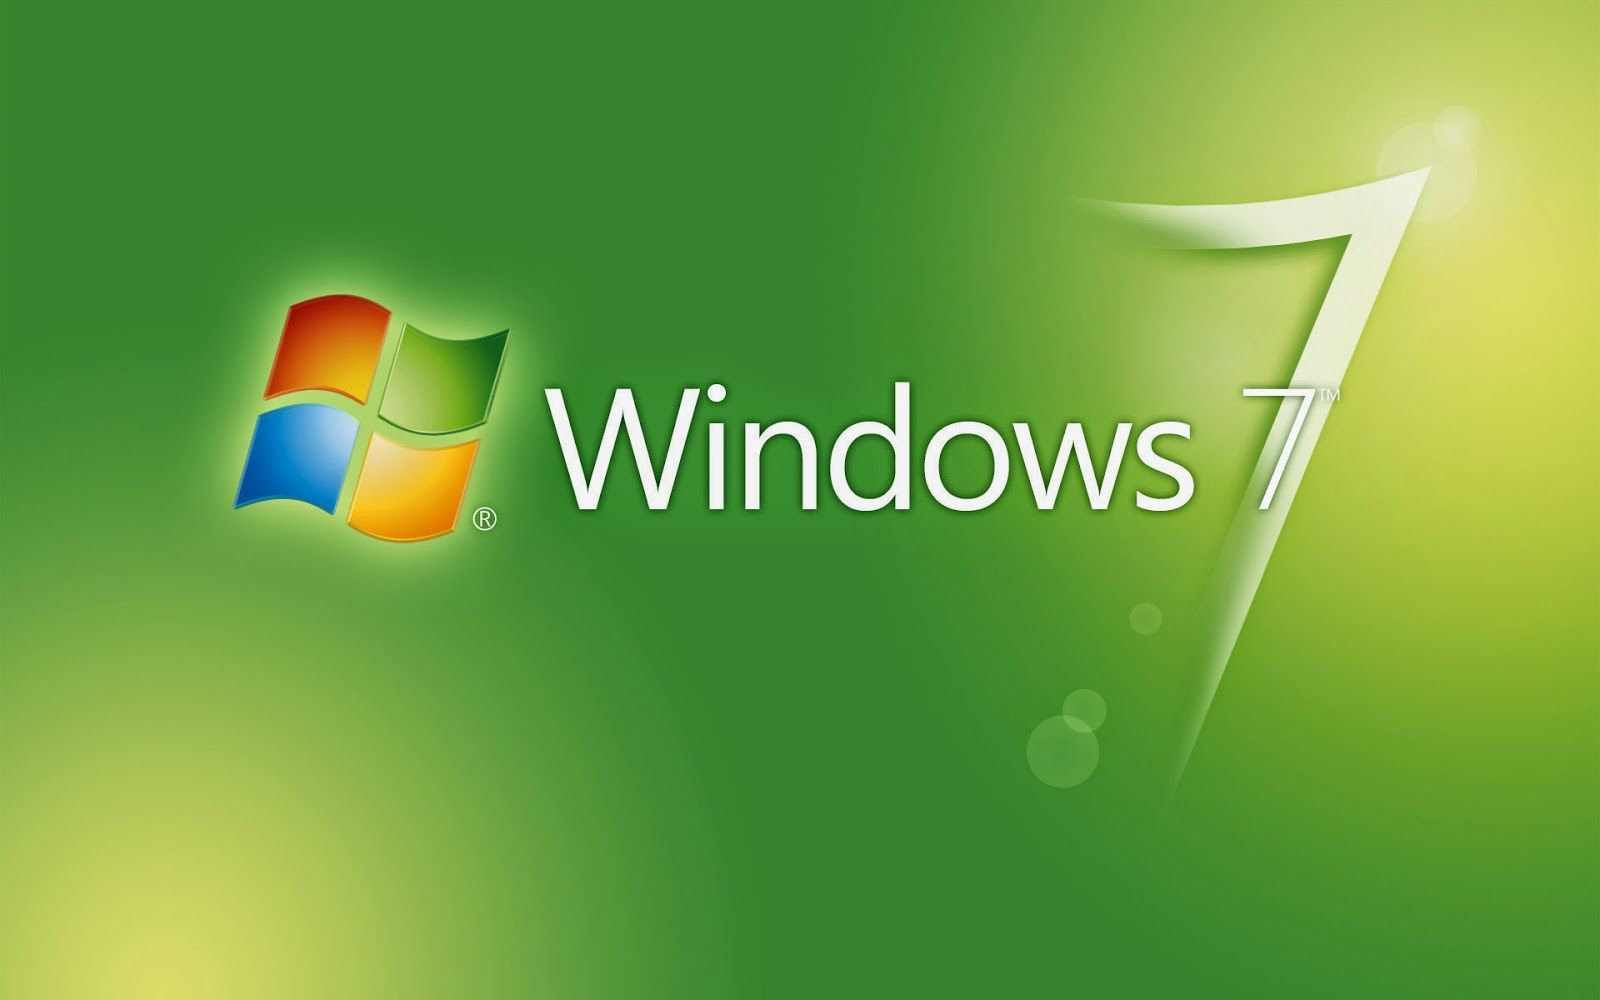 Microsoft Windows Full Hd Wallpaper Amazing Wallpaperz 1366 768 Windows 7 Professional Wallpapers Hd 4 Desktop Wallpapers Backgrounds Windows Green Wallpaper